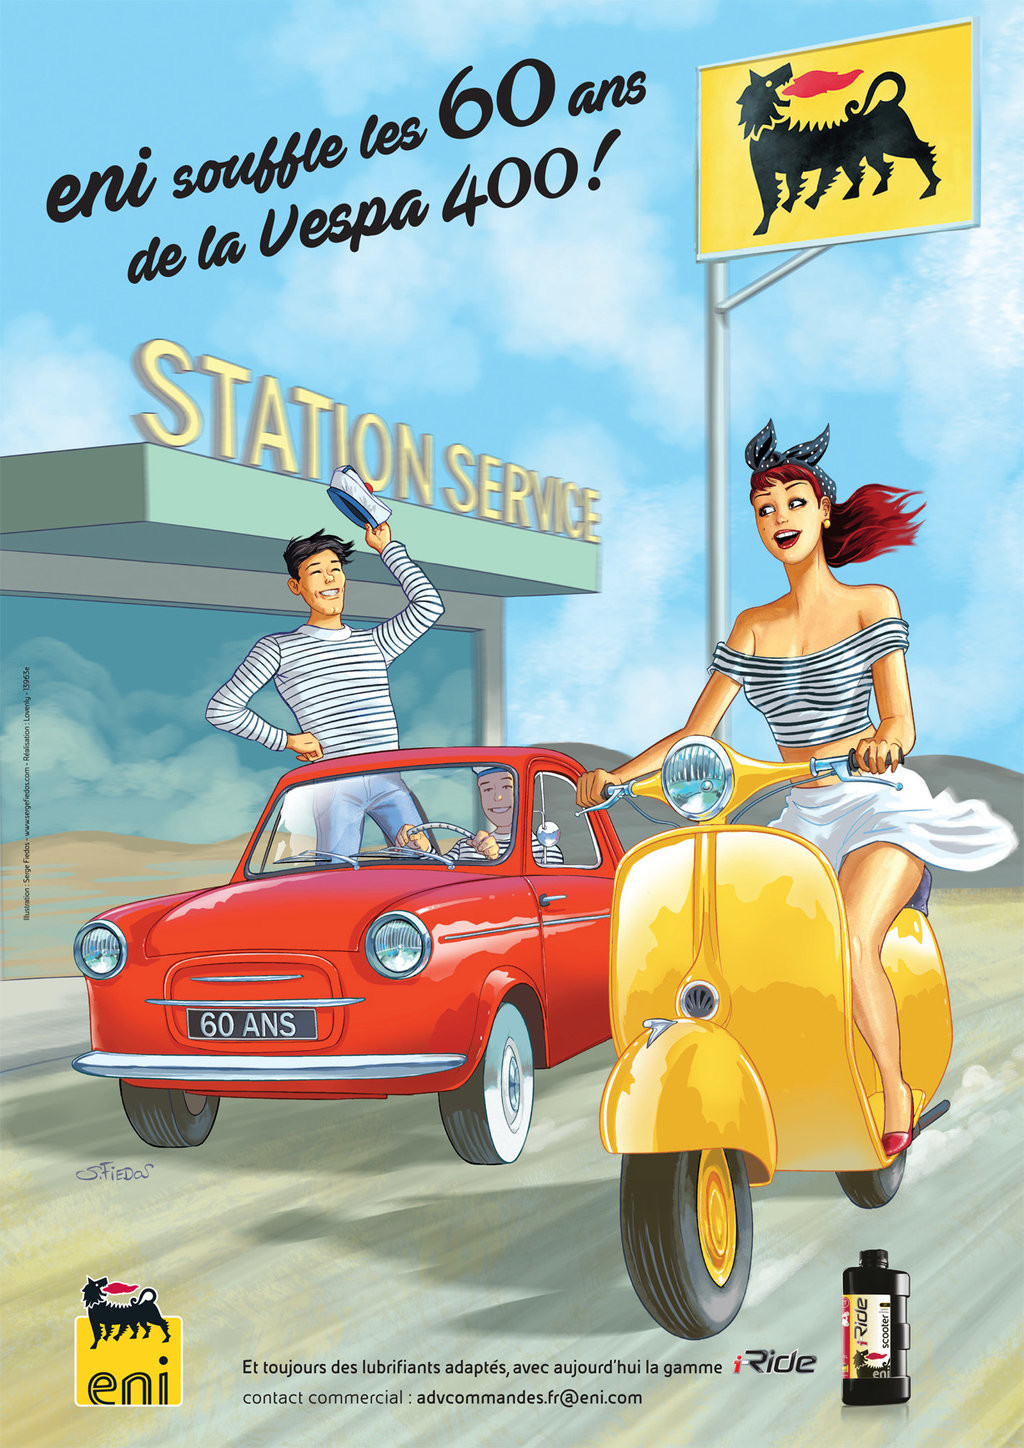 Serge fiedos eni and vespa 2017 sequel vespa 400 by serge fiedos